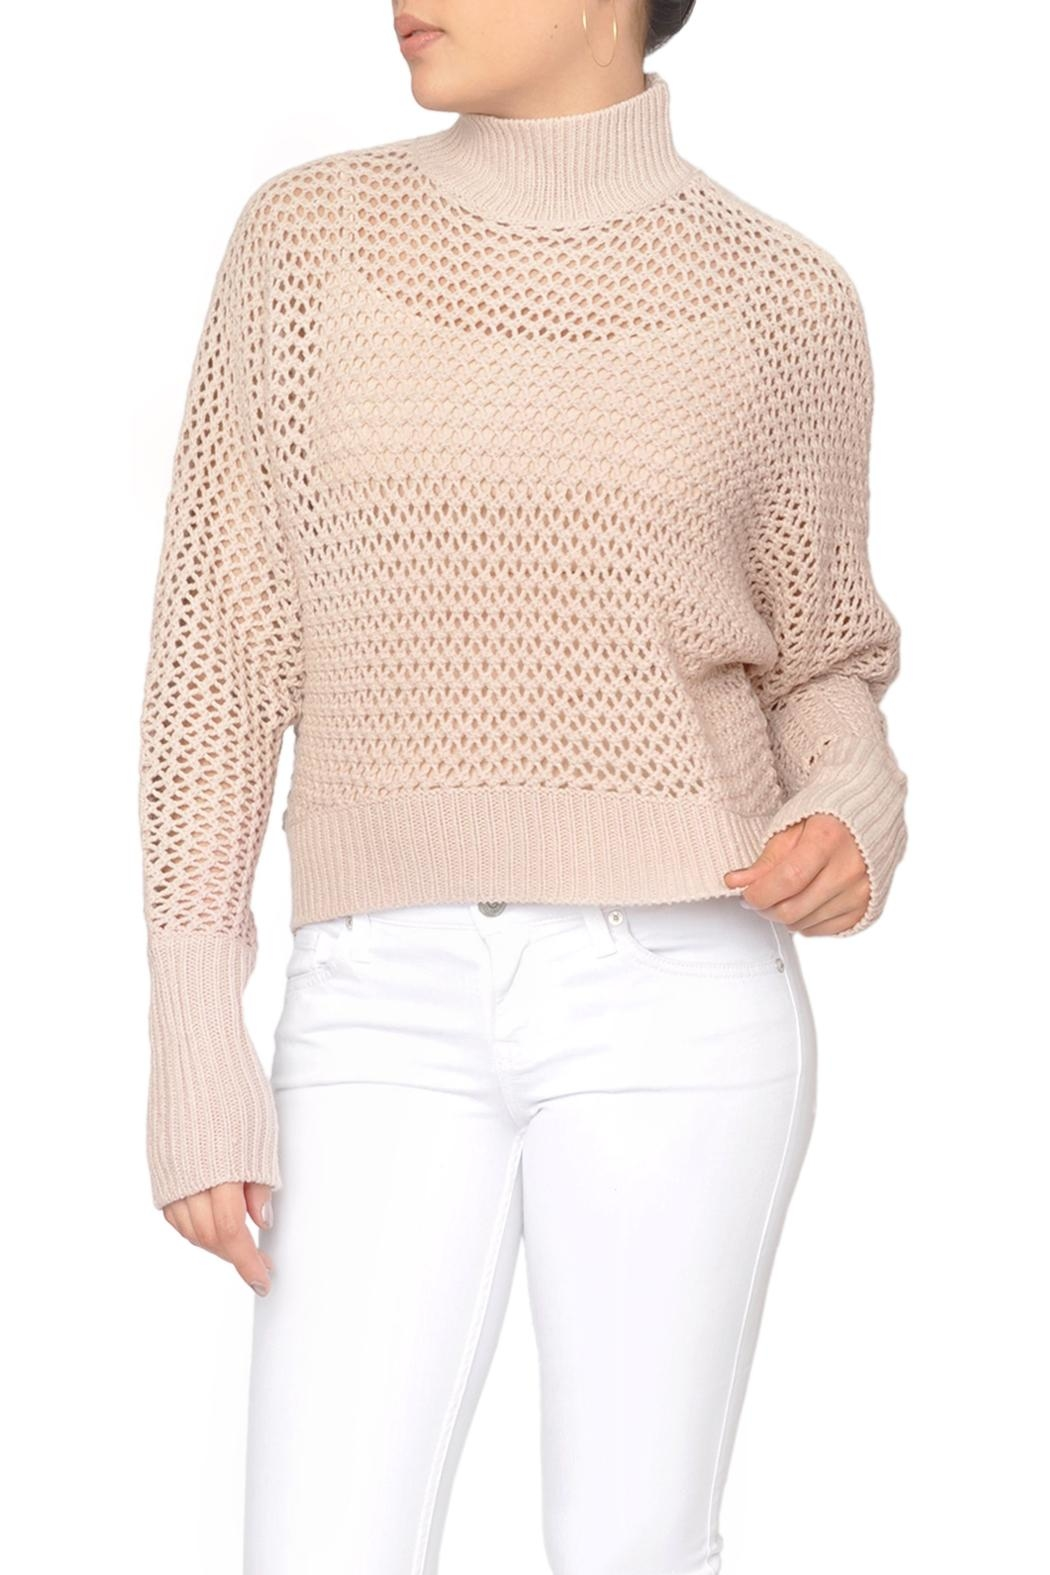 Fifth Label Pink Fishnet Sweater - Main Image